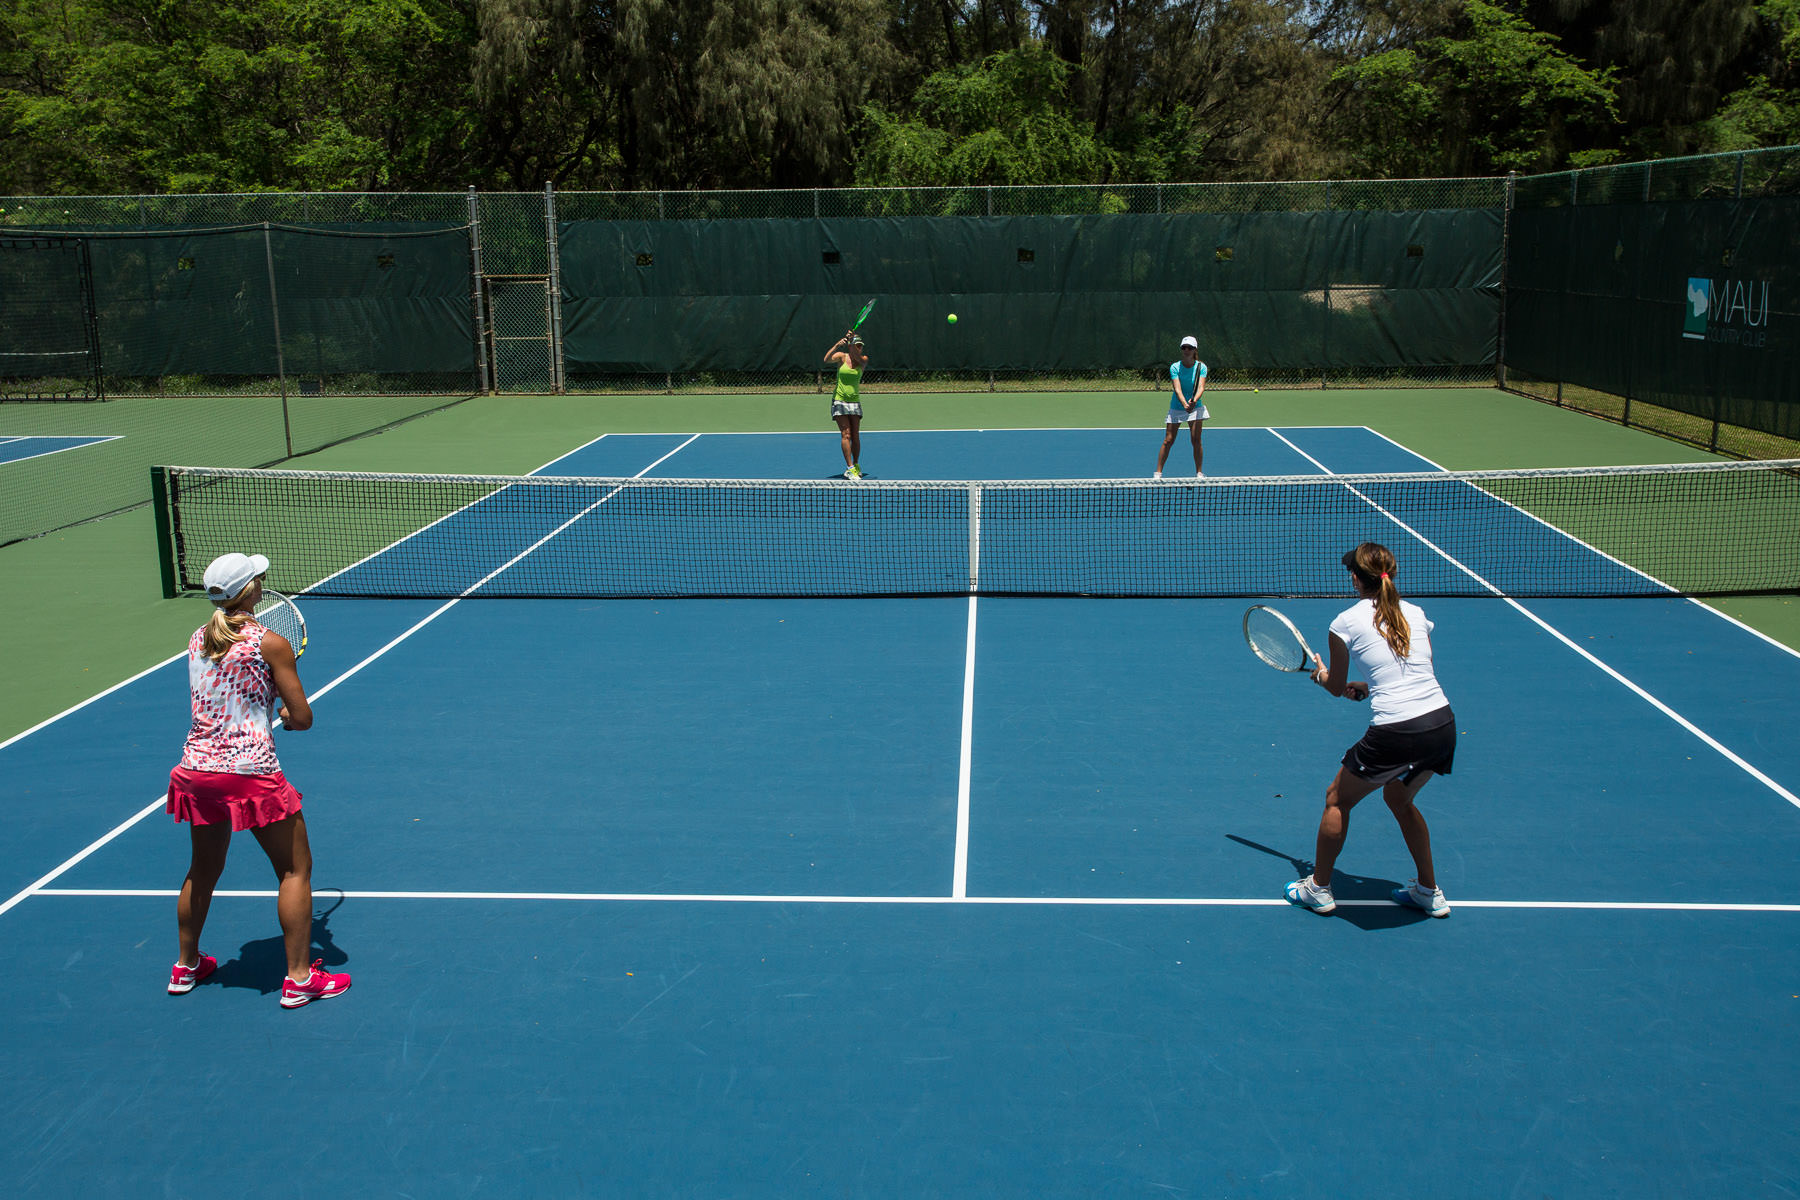 Tennis at Maui Country Club